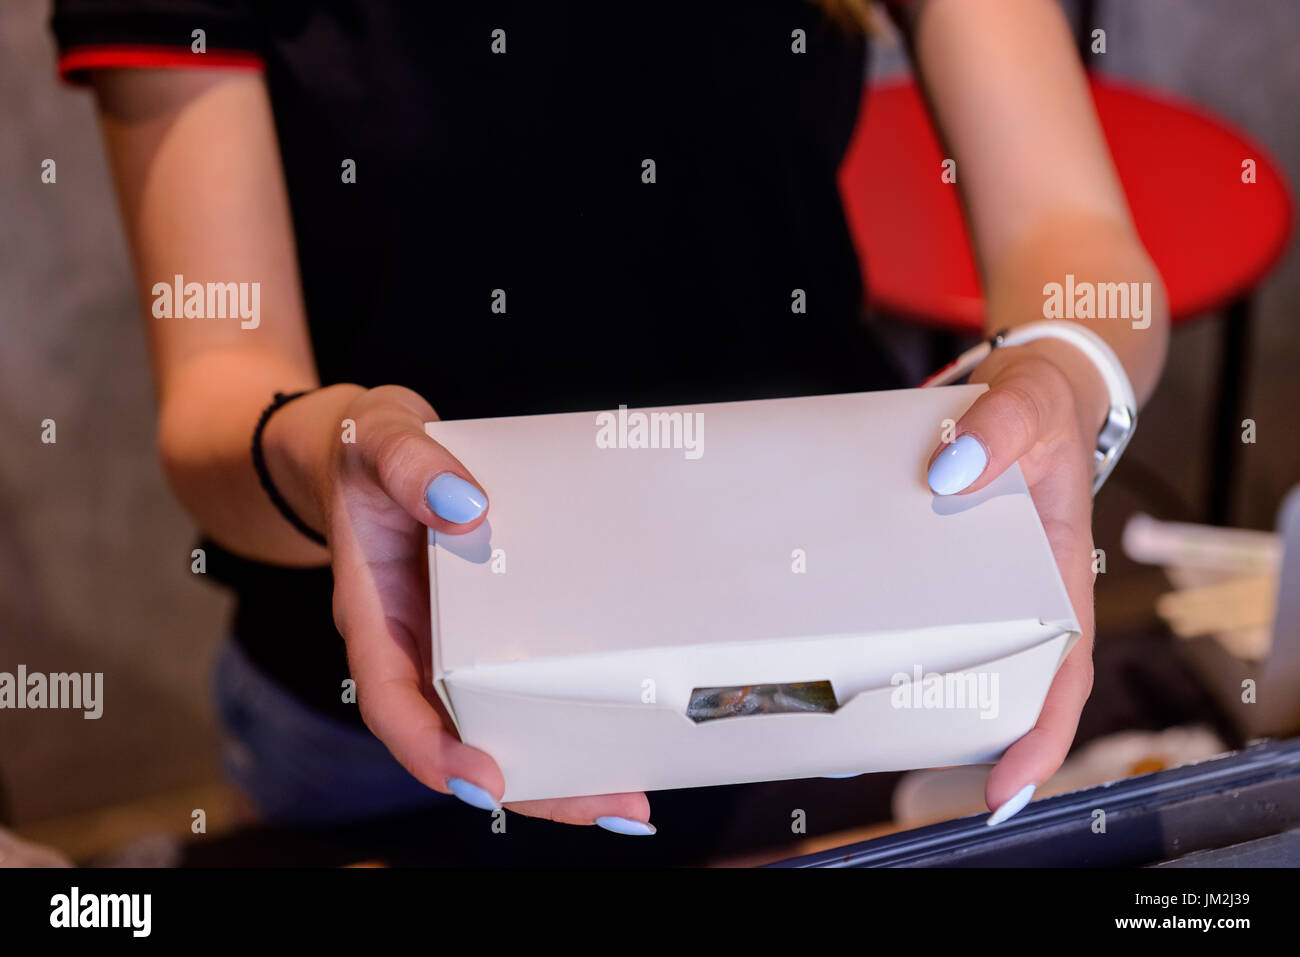 Close up female hands holding and giving take out food in white paper box through the window of issuing orders. Selective focus. Street food concept. - Stock Image